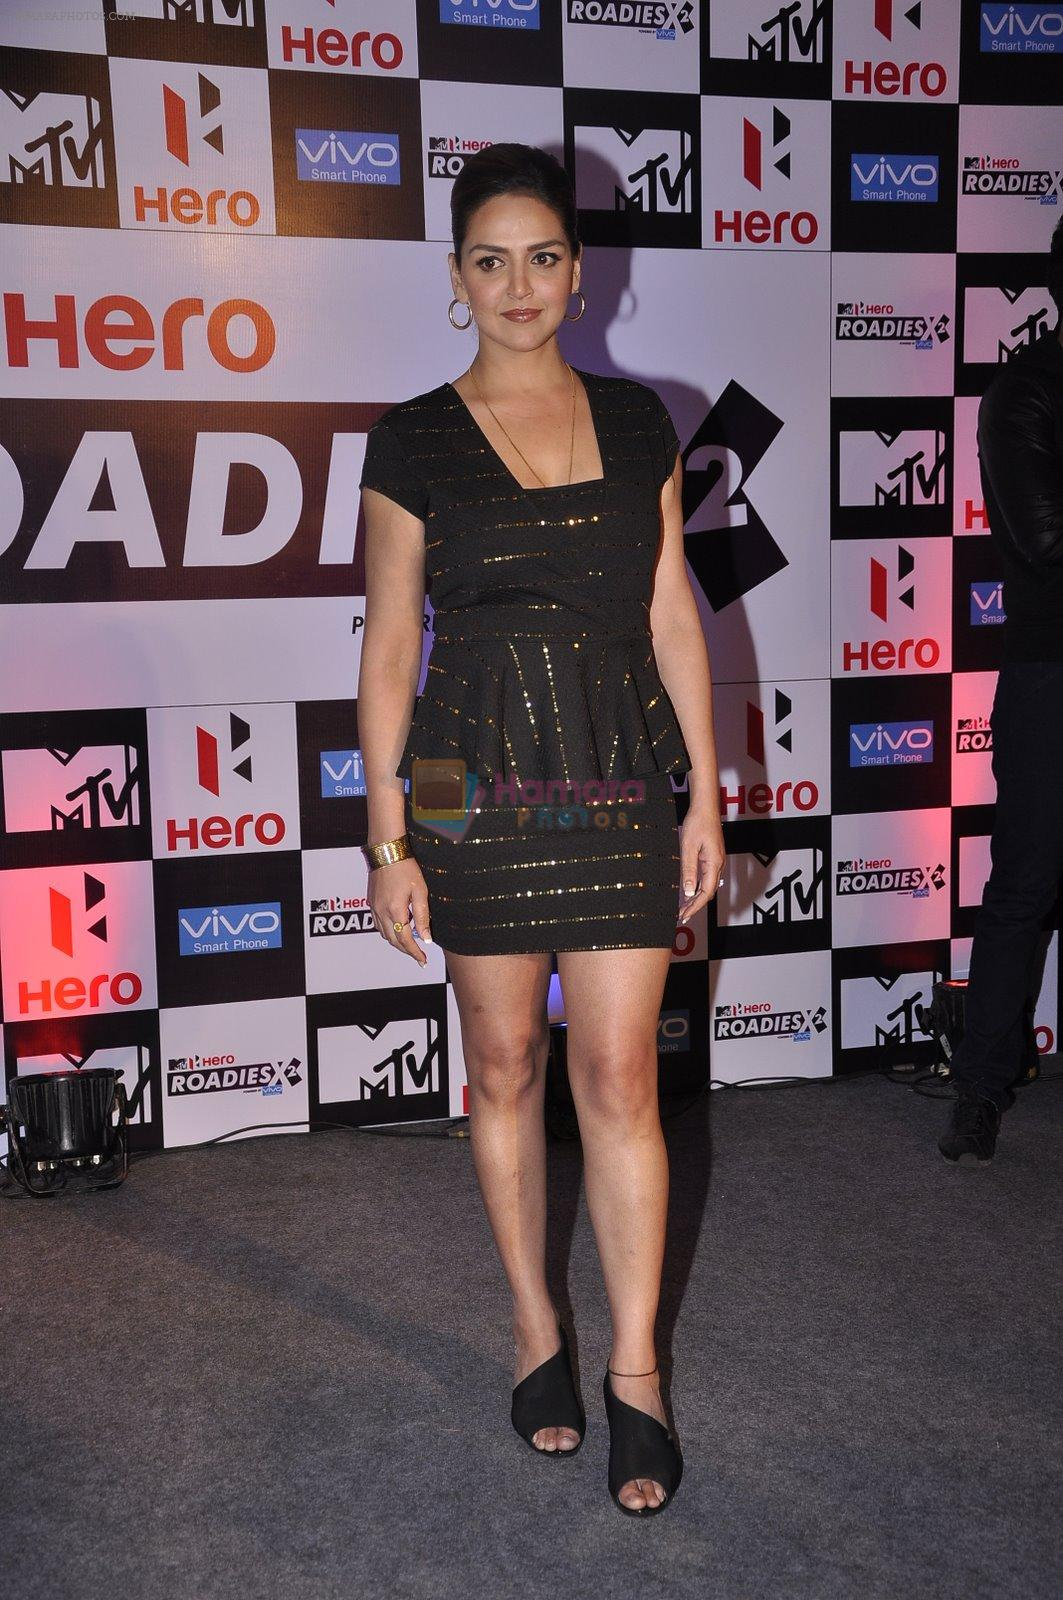 Esha Deol at MTV Roadies press meet in Parel, Mumbai on 22nd Jan 2015